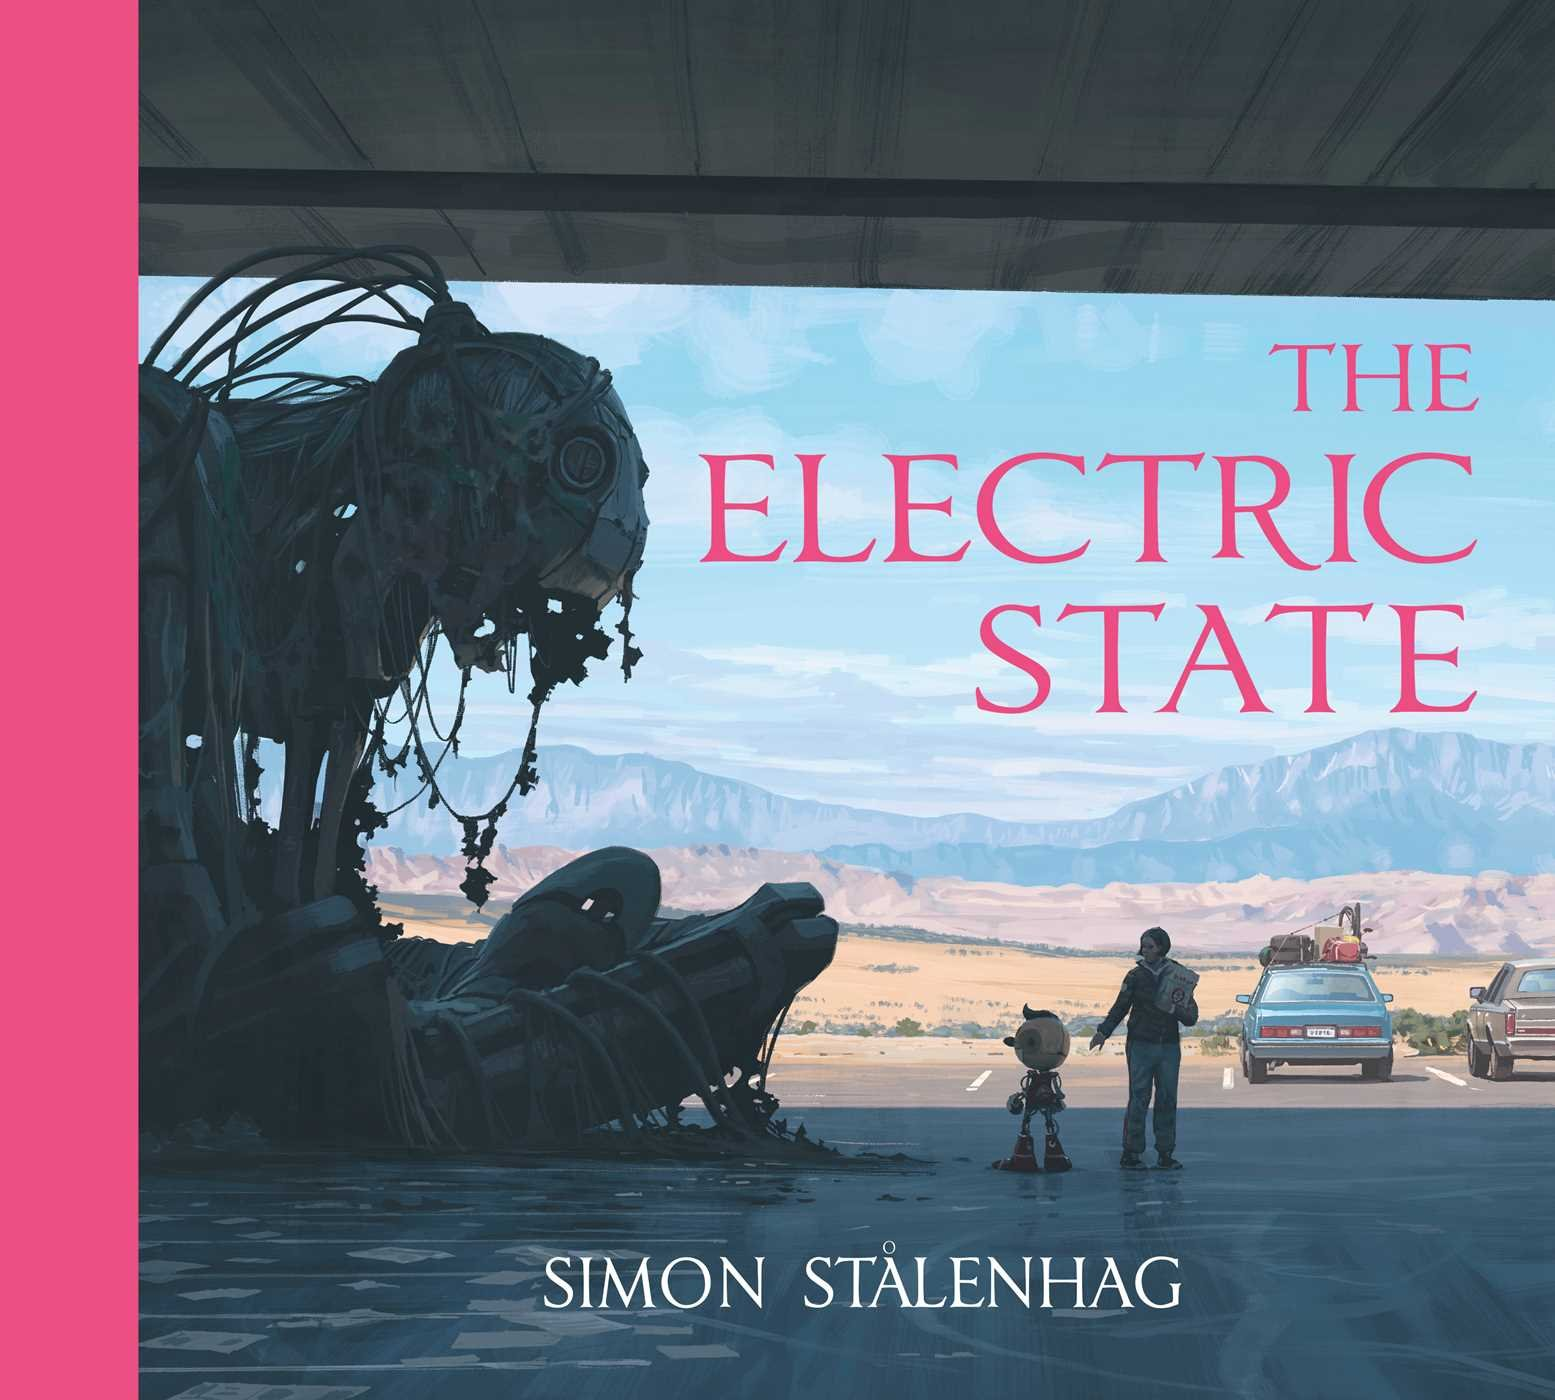 Image result for simon stålenhag book